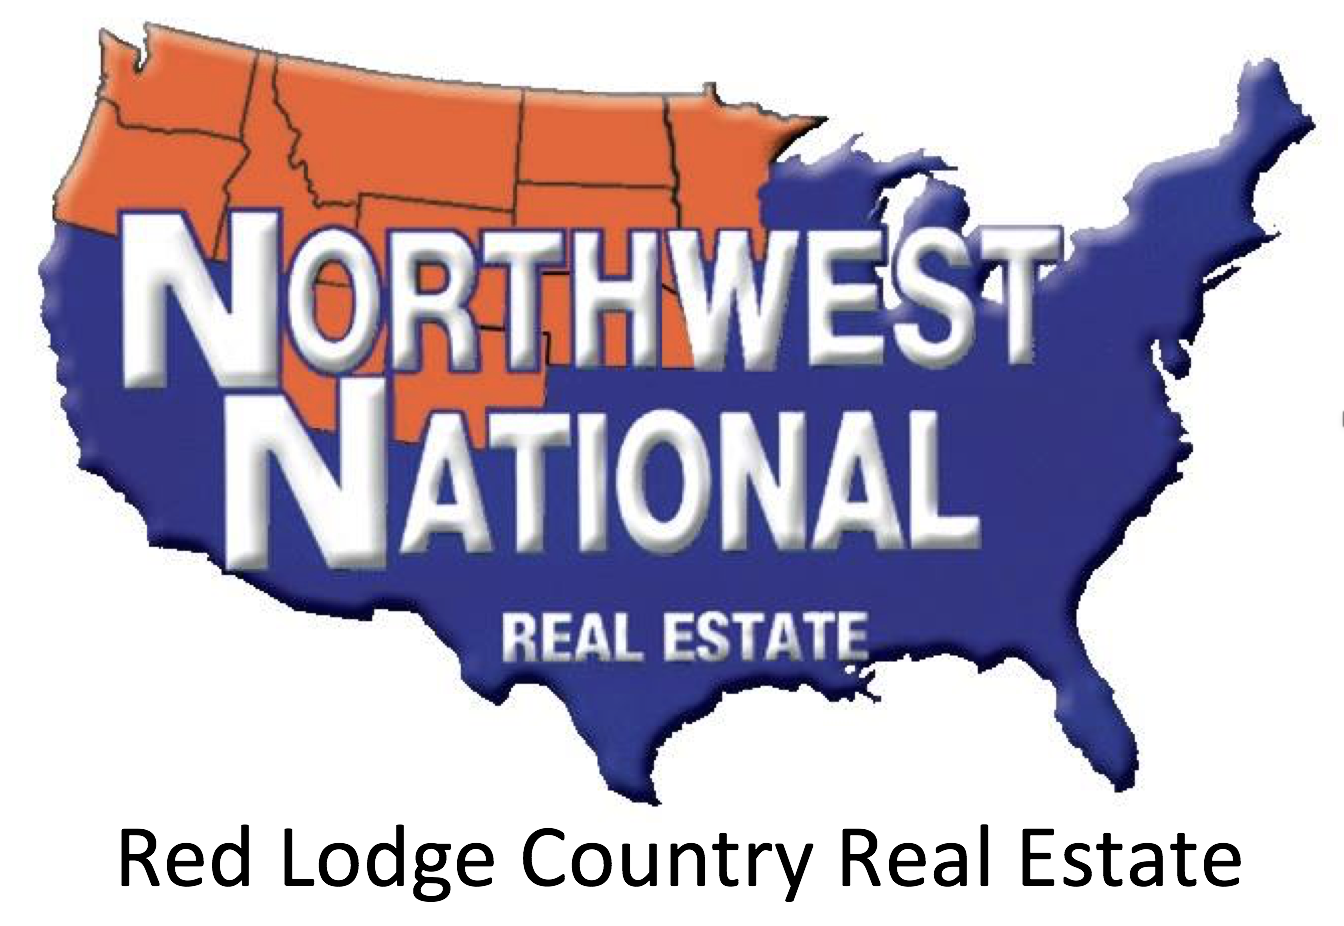 Red Lodge Country Real Estate